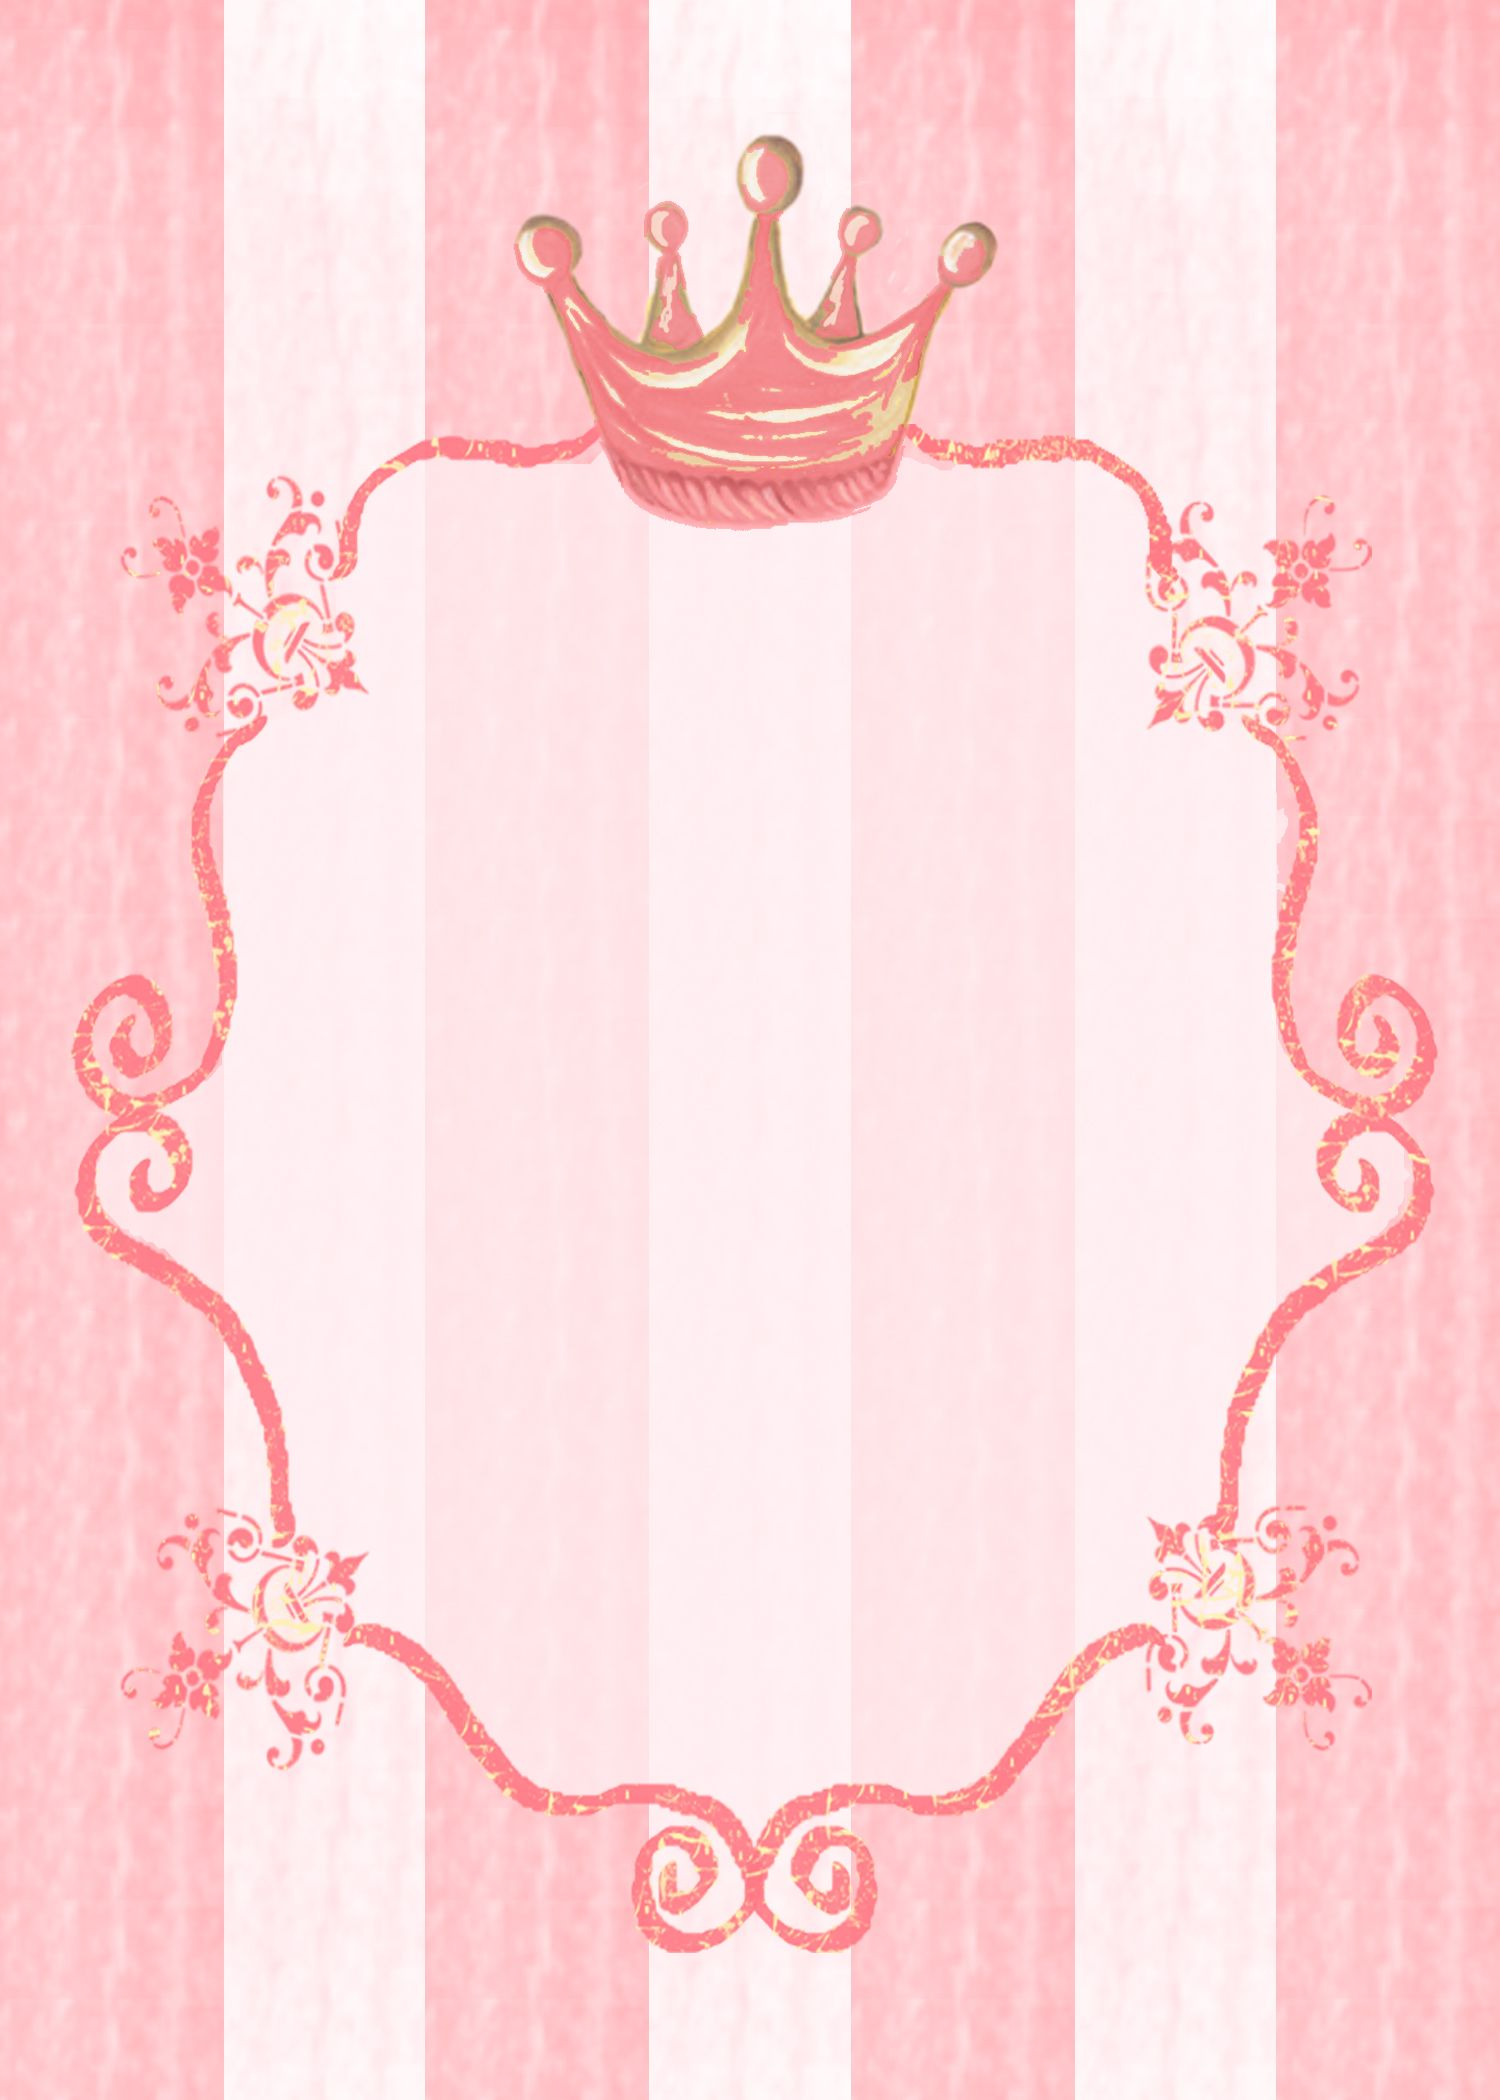 Princess Party Invitation Background Kids Stationery